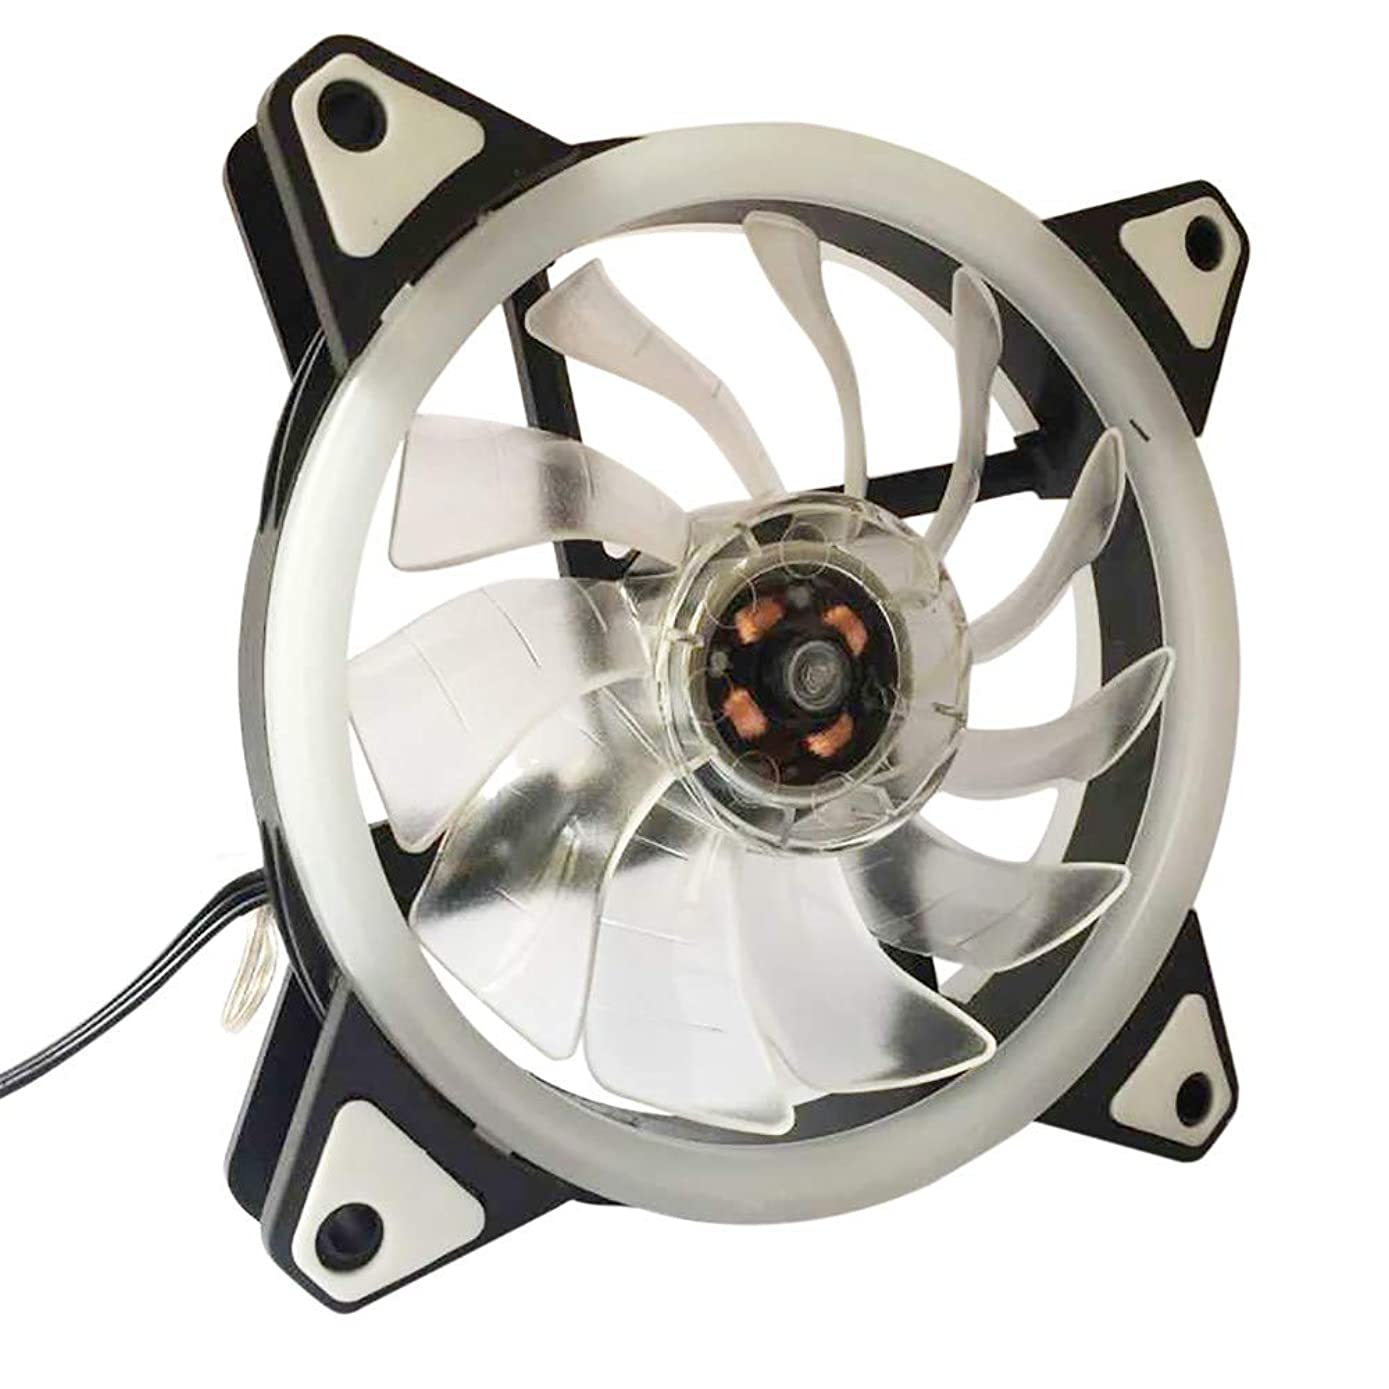 GOVOW-Tech 1212CM Computer Case PC Cooling Fan Adjust led 120mm Quiet Cooler Standard Low Noise Case Fan - High Tensile Strength - Innovative Design